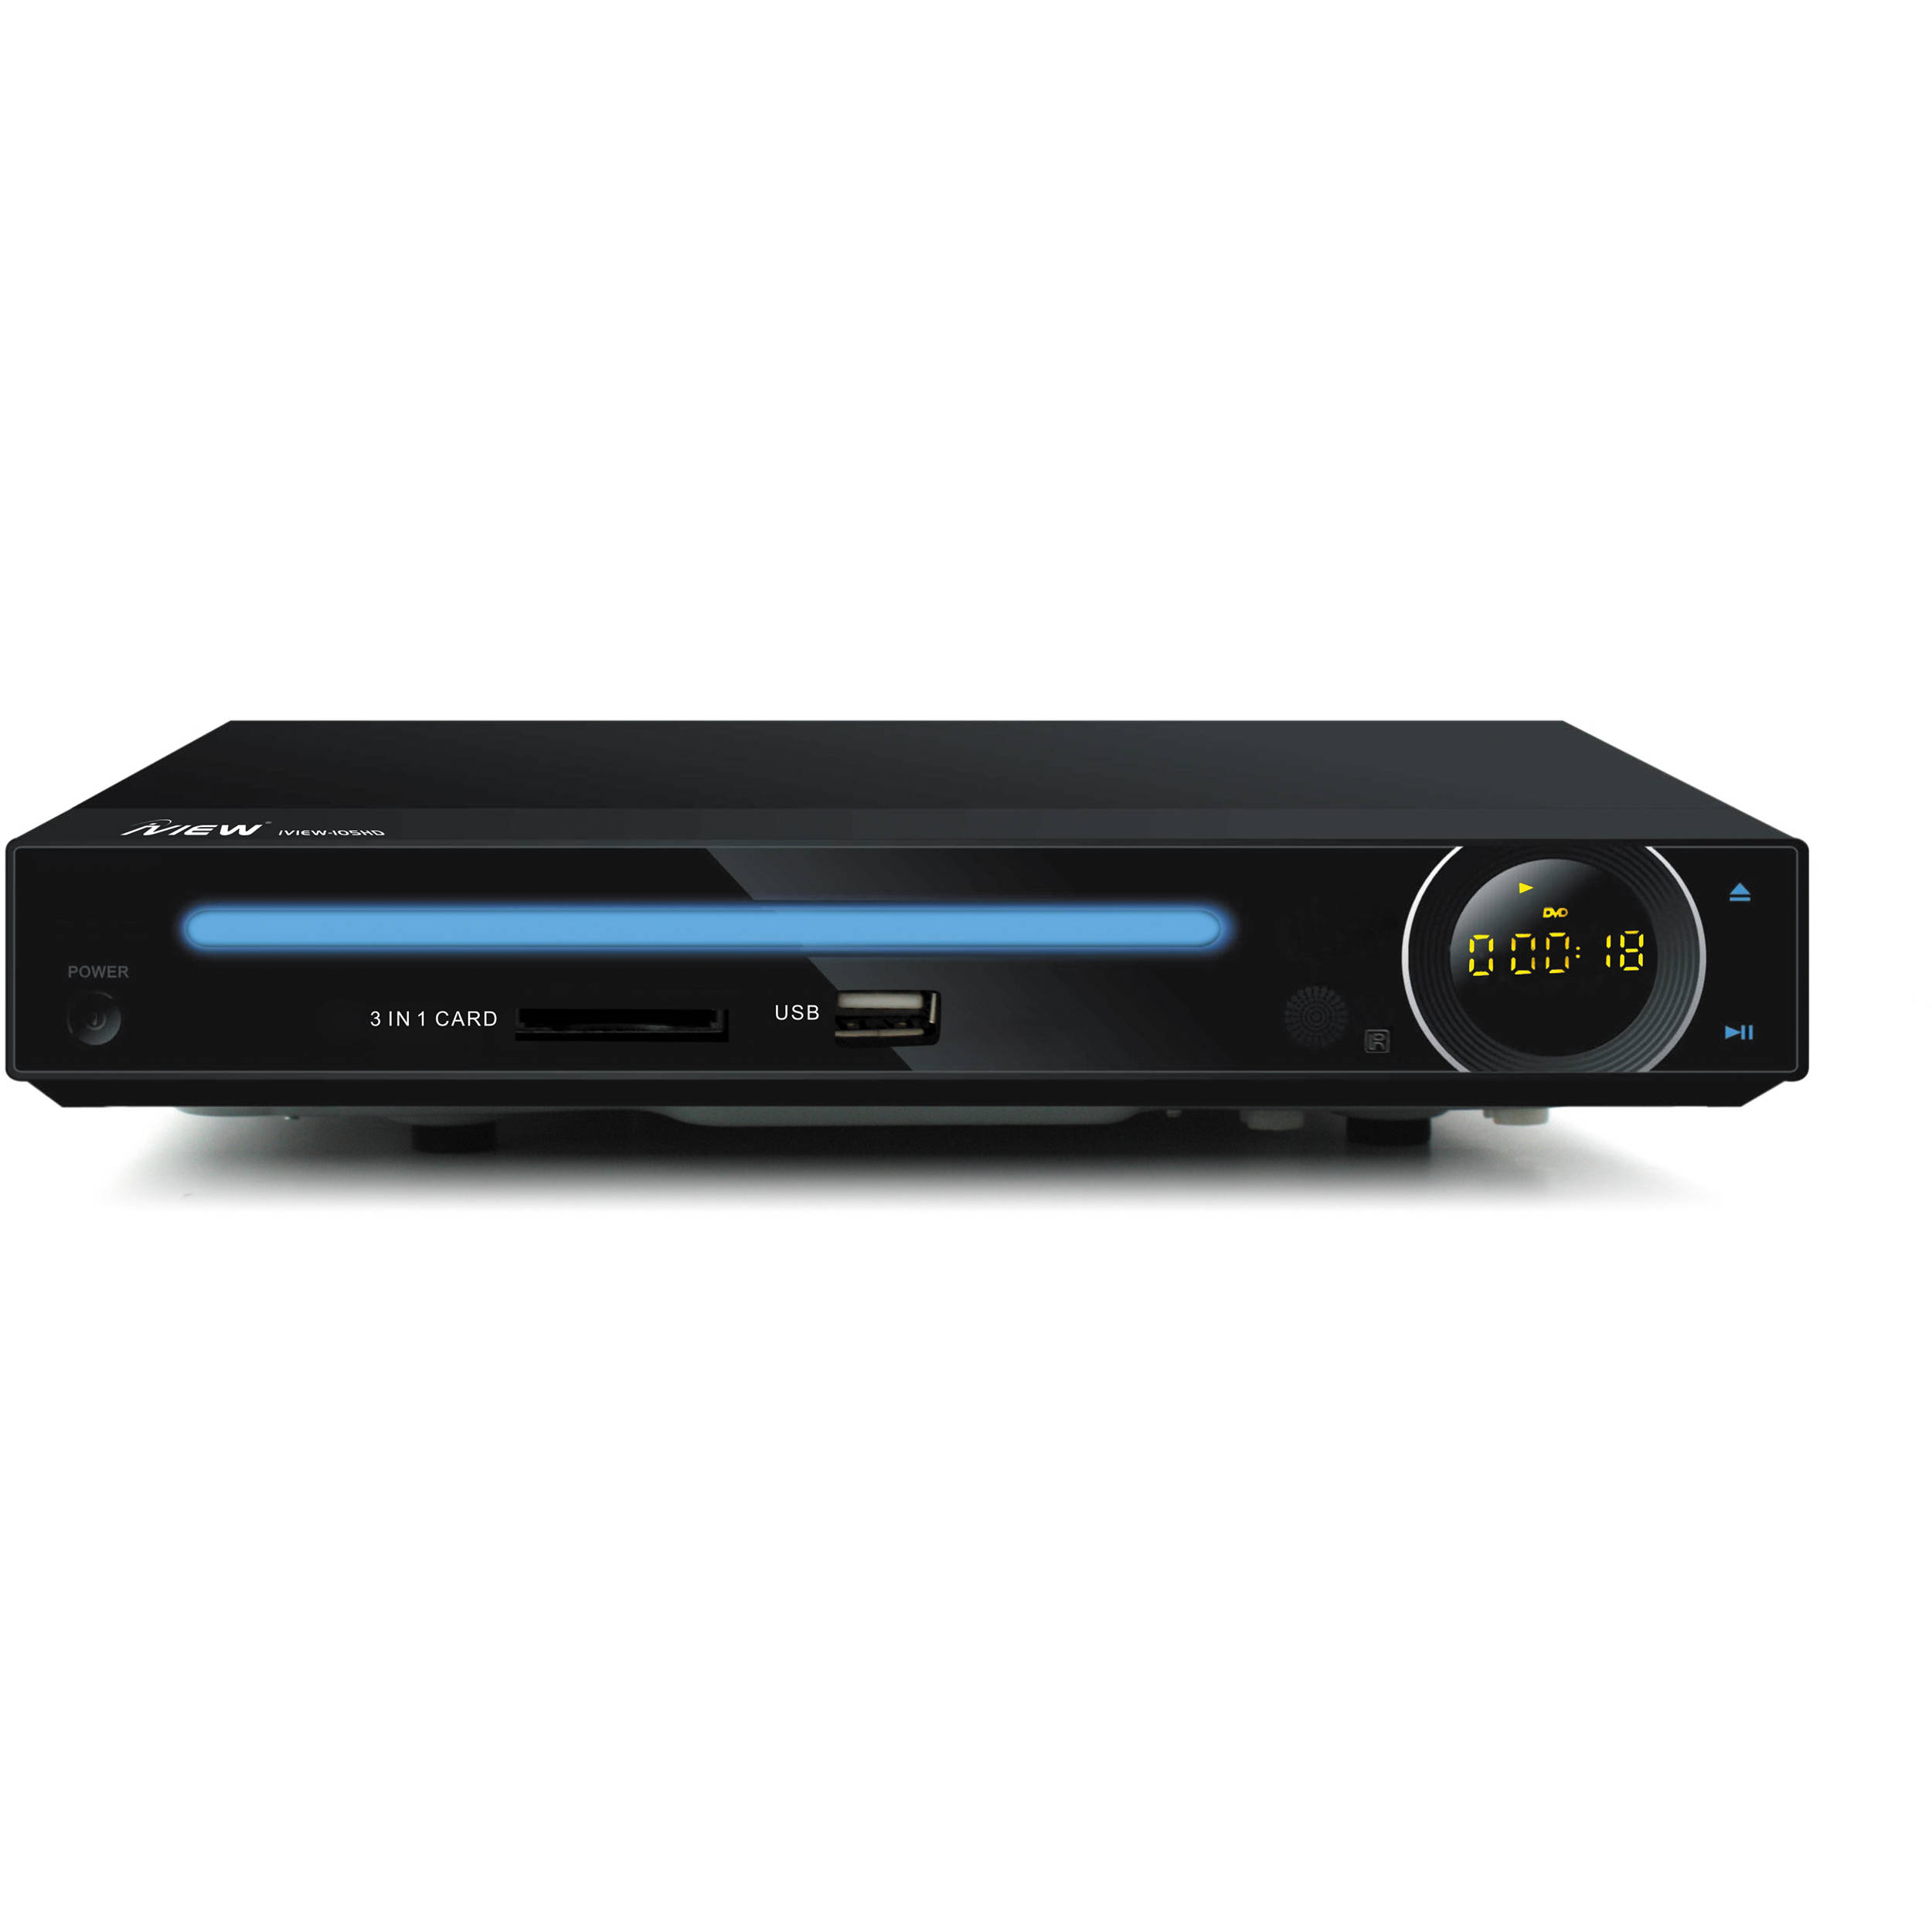 iview iview 105hd hdmi compact dvd player with full iview 105hd. Black Bedroom Furniture Sets. Home Design Ideas